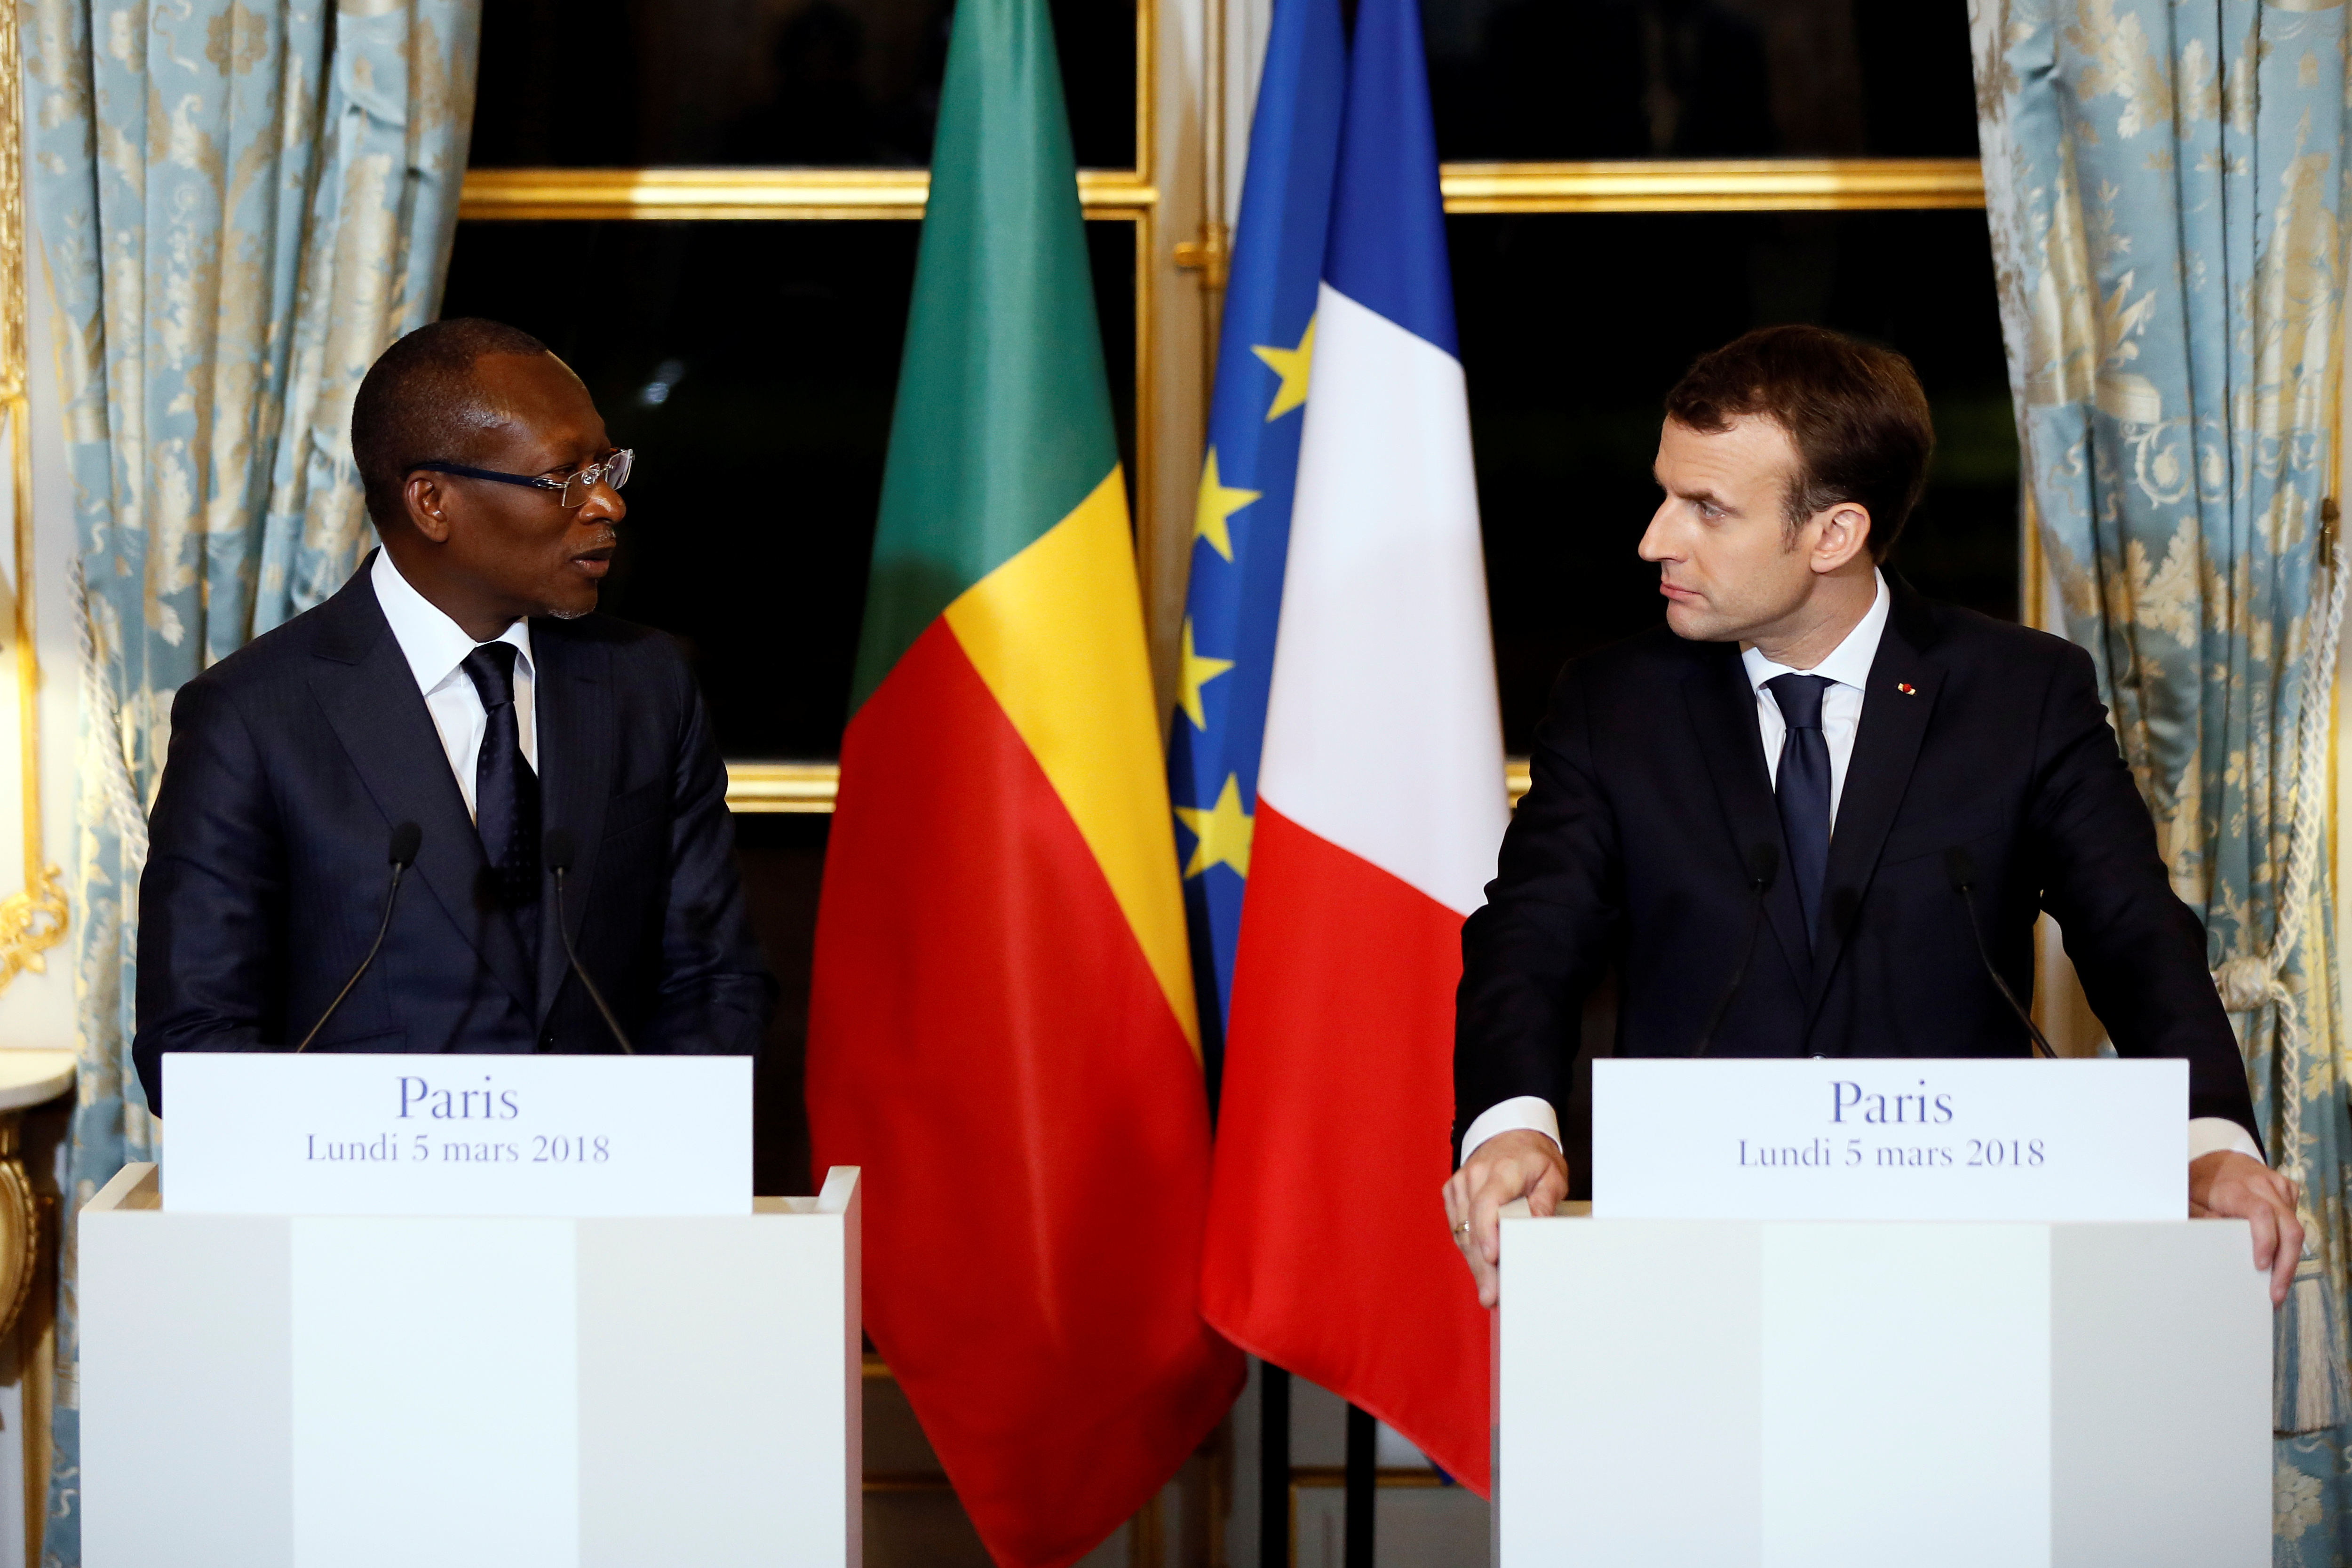 French President Emmanuel Macron and President Patrice Talon of Benin hold a joint press conference after a meeting at the Elysee Palace in Paris, France, March 5, 2018.